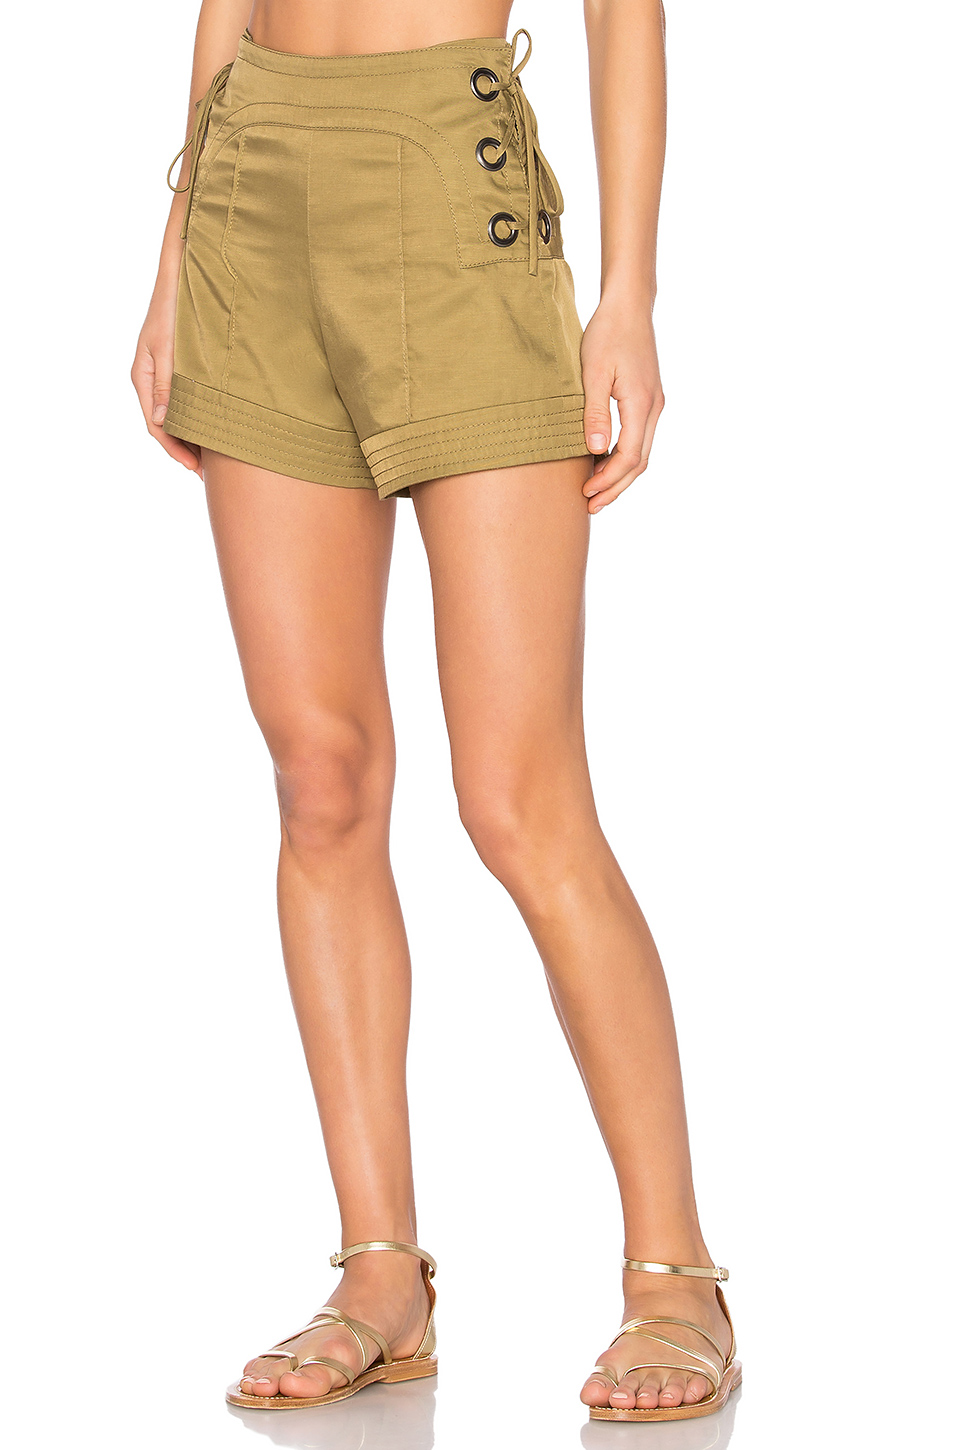 Marissa Webb Marie Shorts in Olive